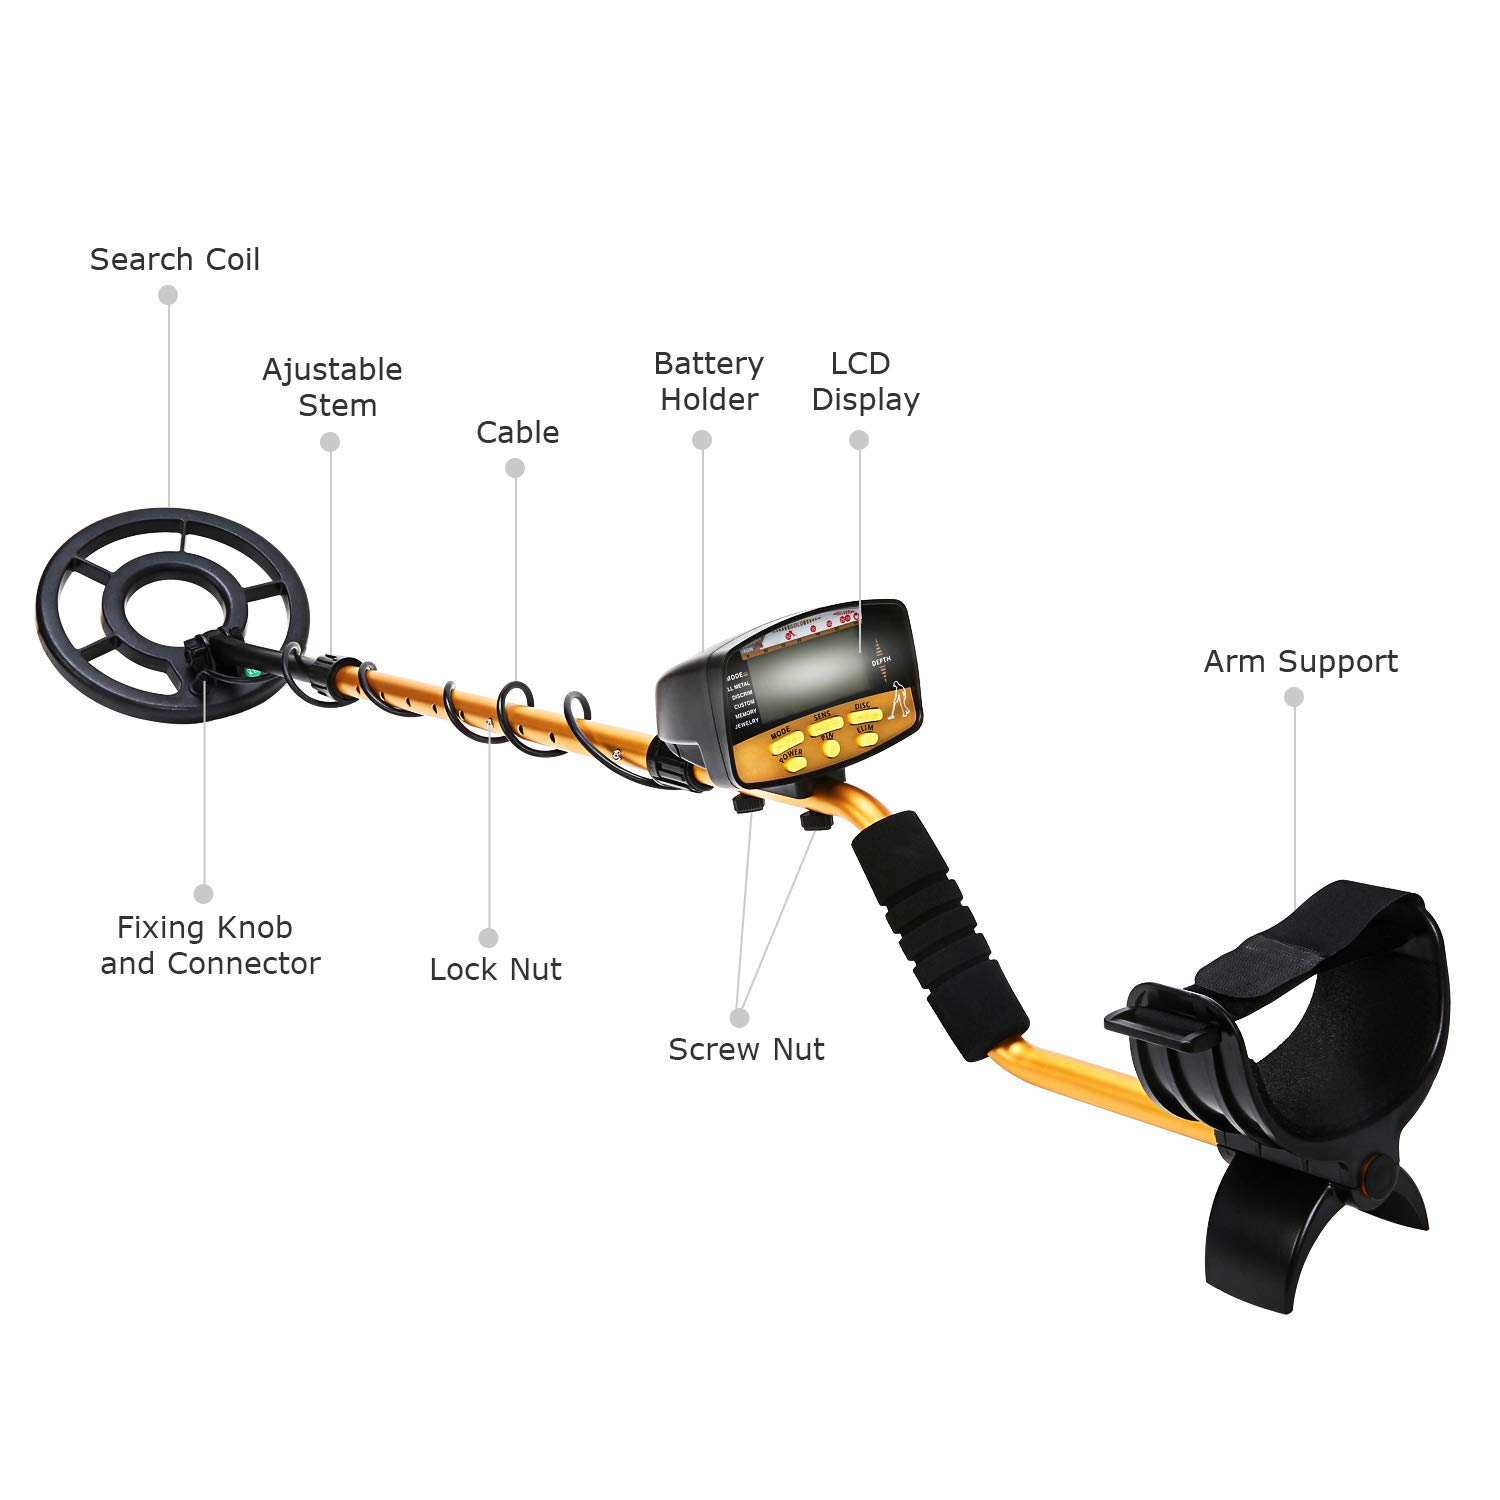 Amazon.com : NALANDA Metal Detector, 18khz Treasure Hunters Gold Finder with LCD Display 5 Detection Modes Adjustable Sensitivity and Submersible Search ...